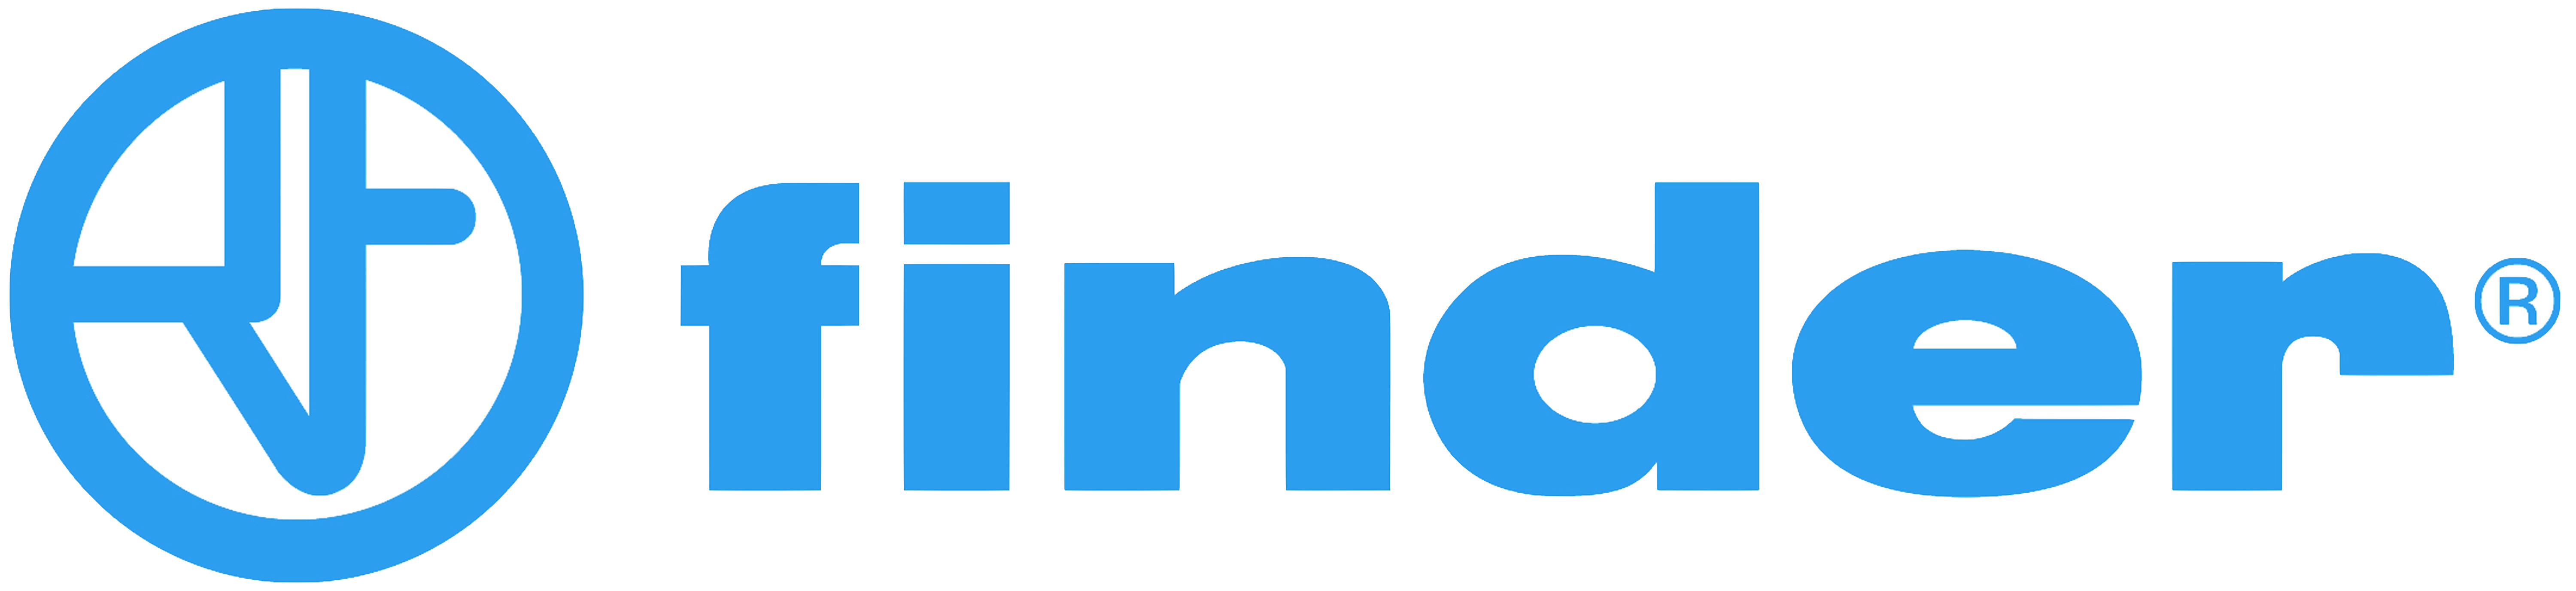 finder-logo.png